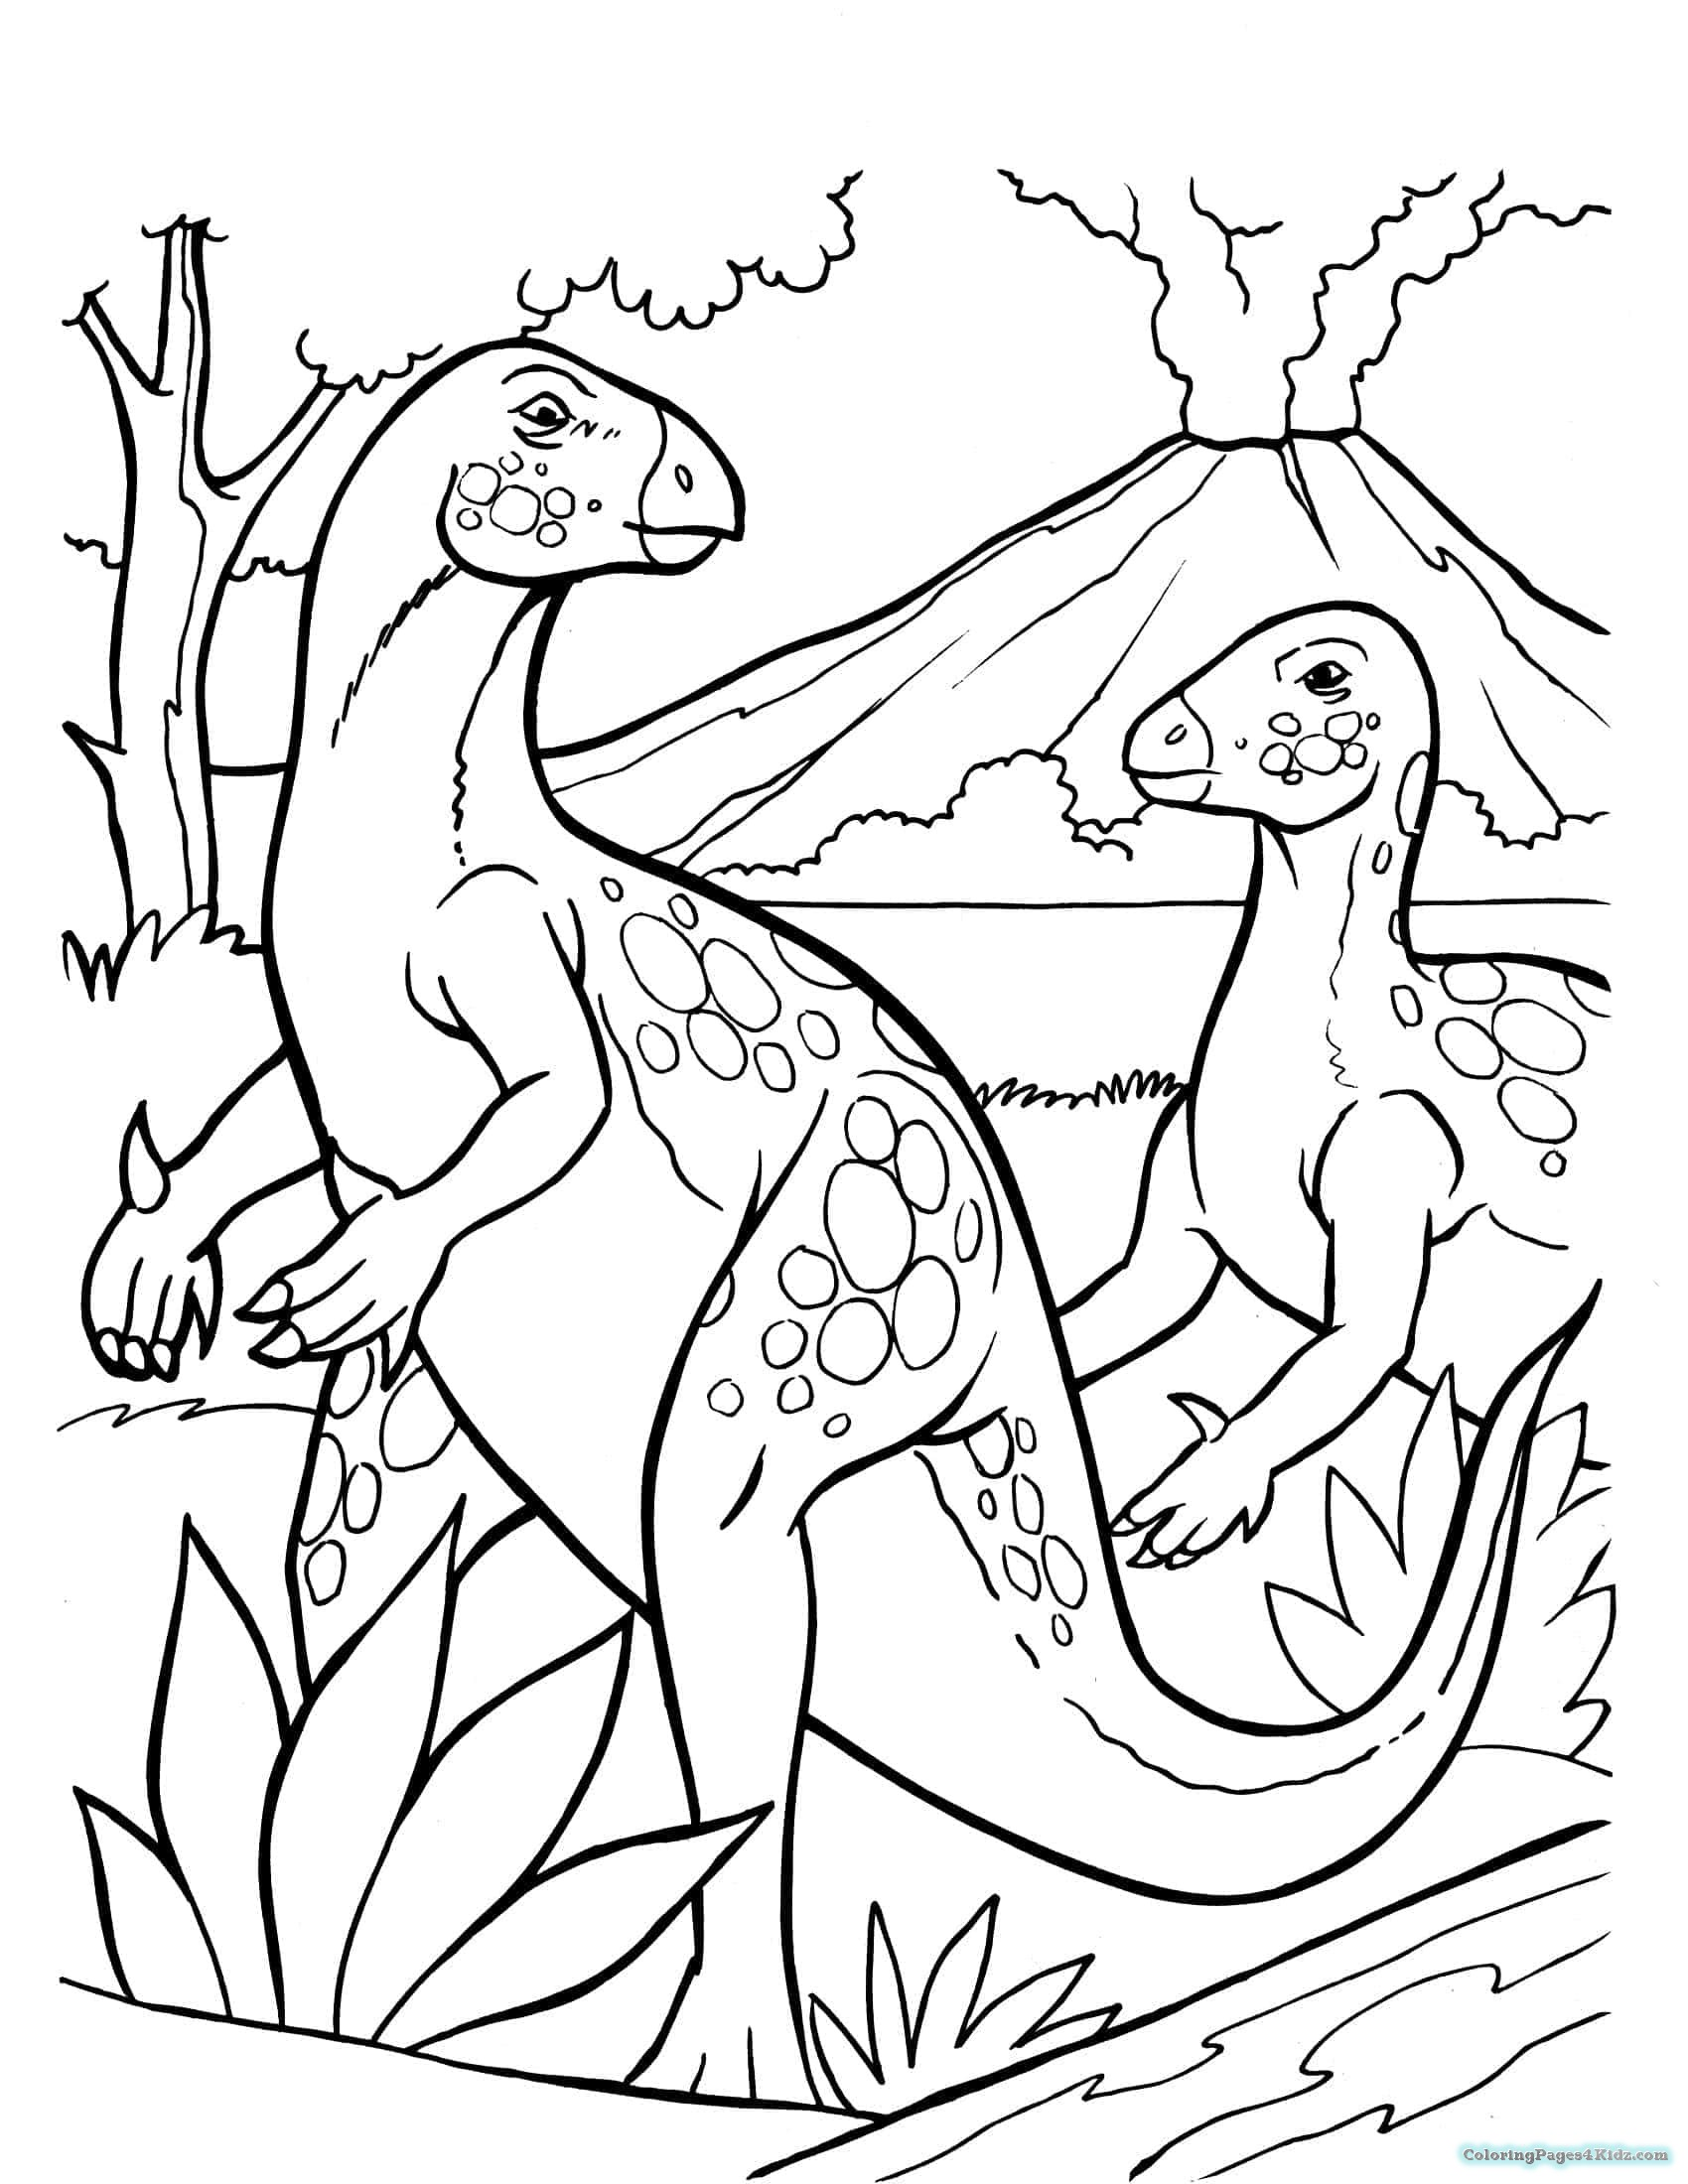 meat eating dinosaur coloring pages meat eating dinosaurs coloring pages t rex coloring meat pages eating dinosaur coloring